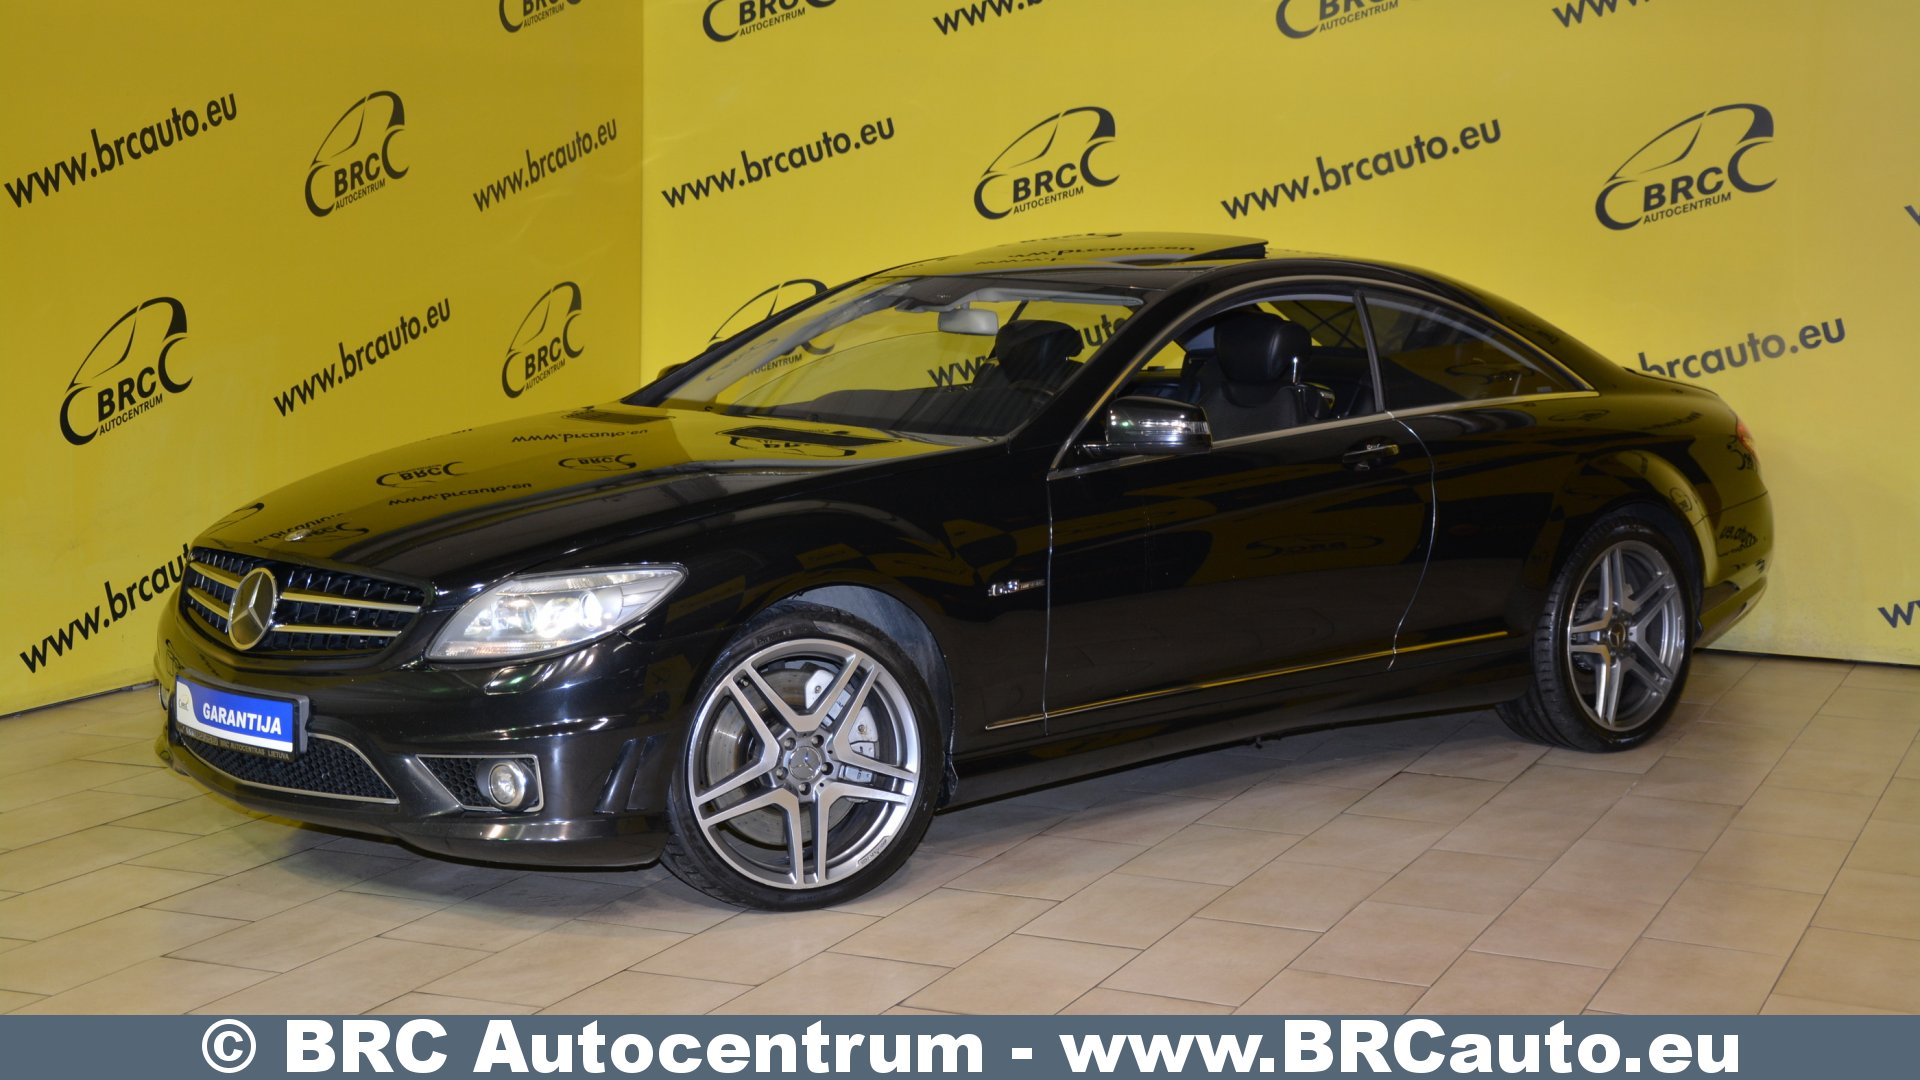 Mercedes benz cl 63 amg v8 coupe automatas no 129 brc for Mercedes benz v8 amg